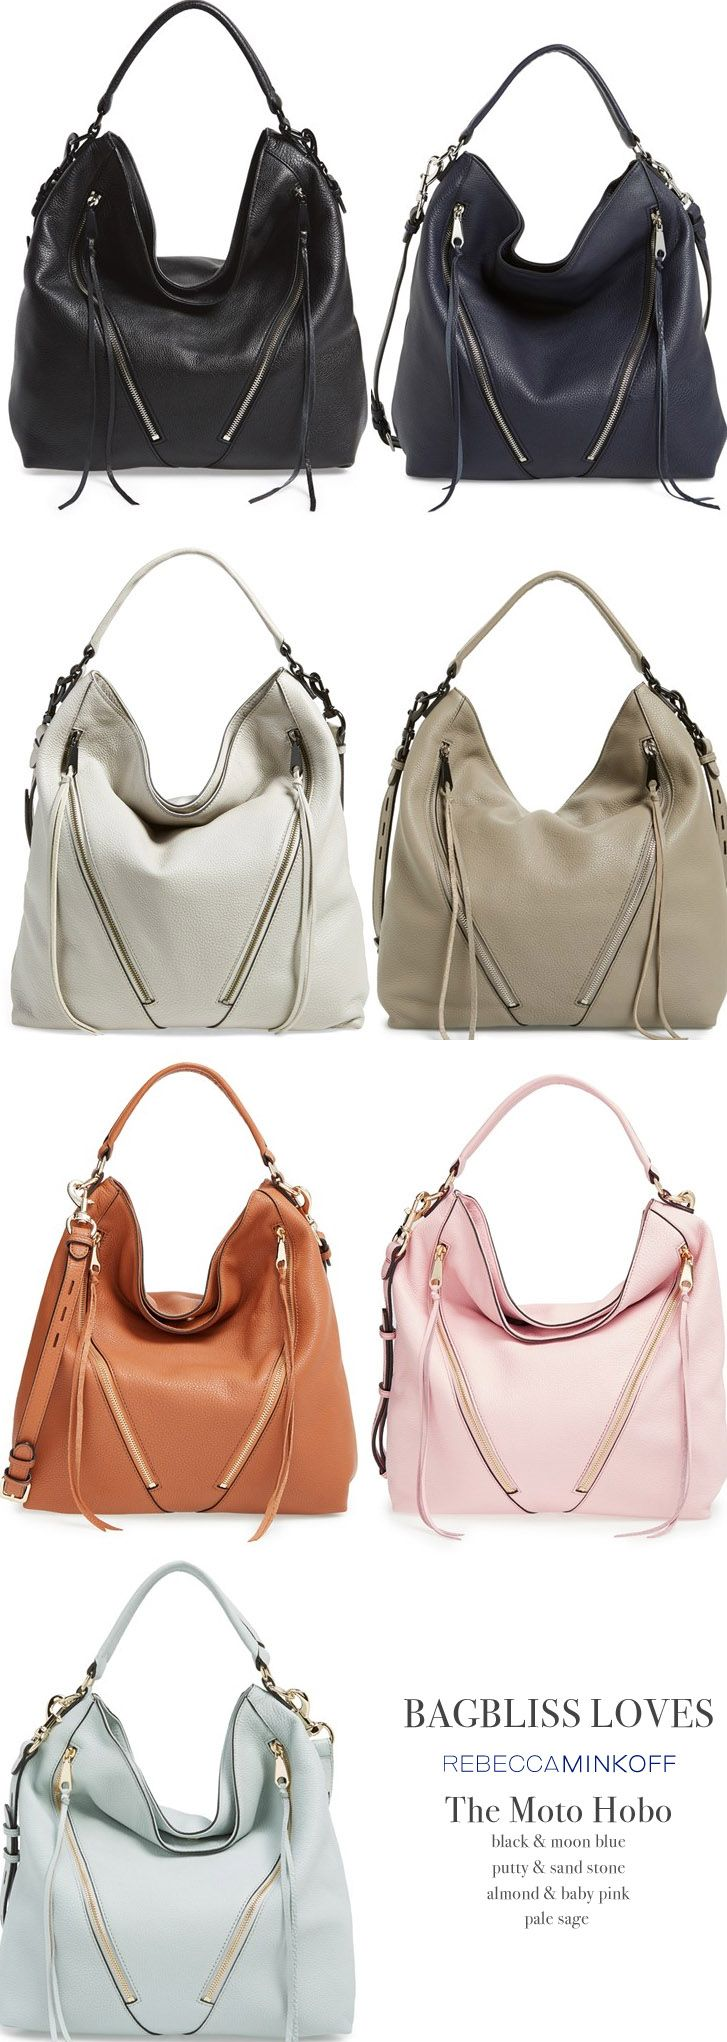 Everyday Chic Handbag: Rebecca Minkoff Moto Hobo Bag